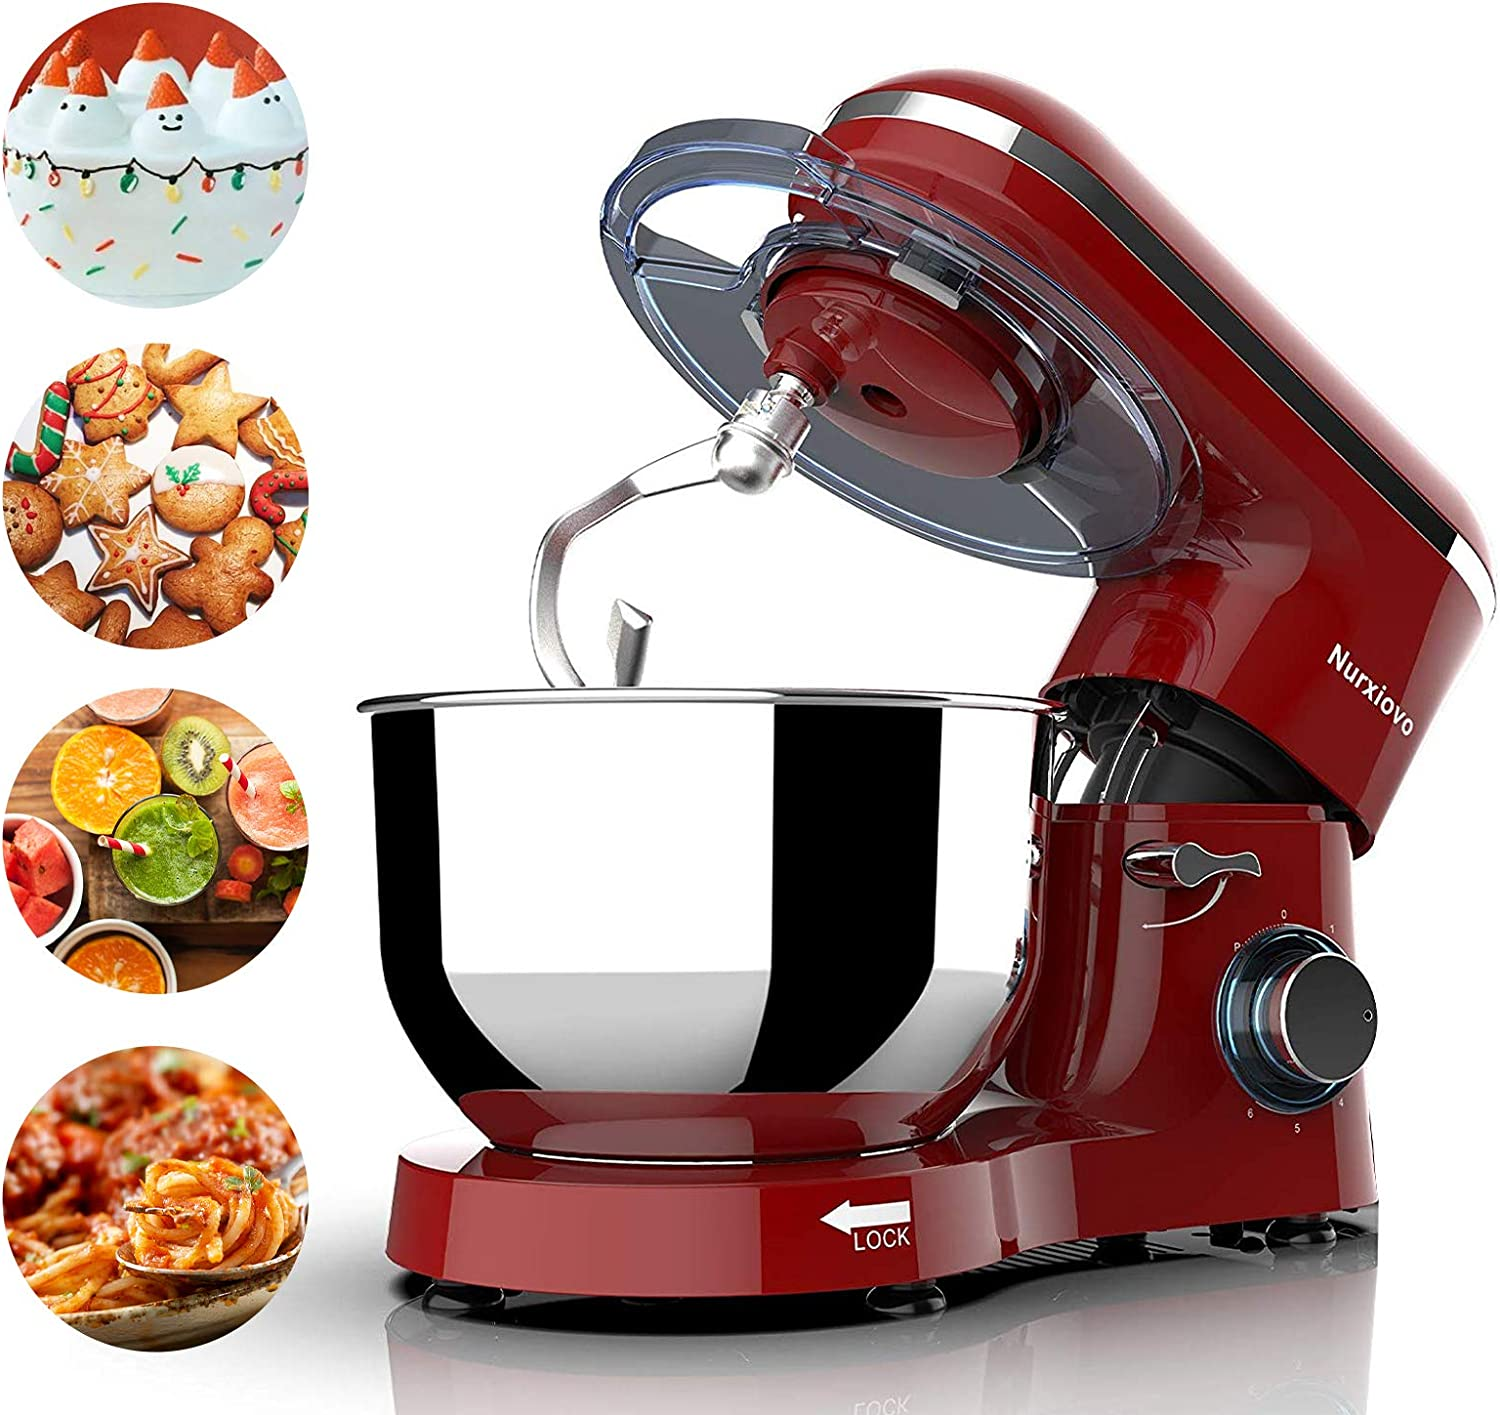 Nurxiovo 7QT Stand Mixer Kitchen,Tilt-Head 6-Speed Food Stand Mixer,660W Electric Mixer with Dishwasher Safe Dough Hook,Whisk,Beater,Splash Lid and Strong Suction Cups Red